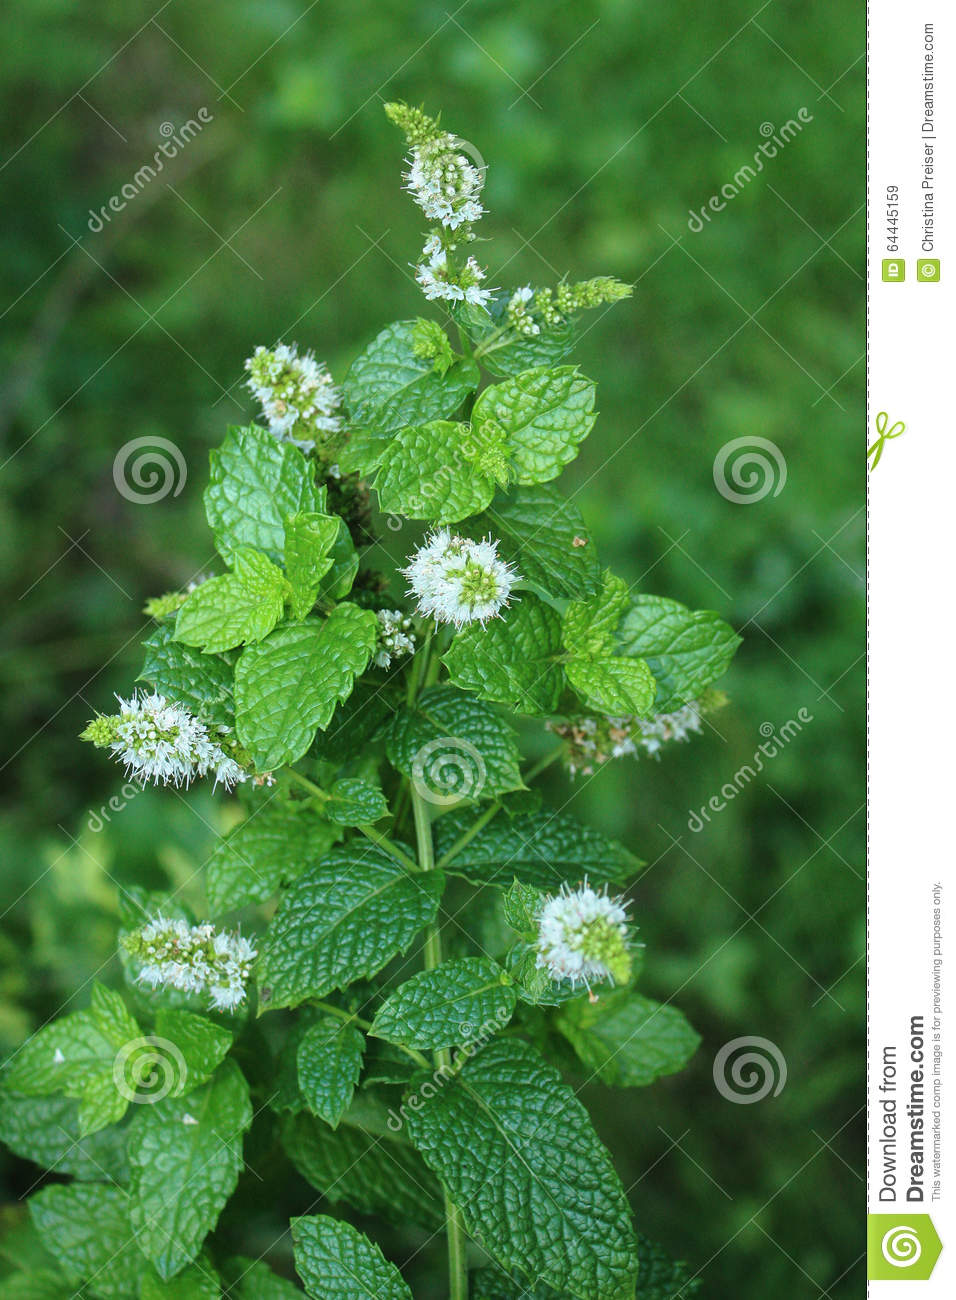 Flowering Spearmint Stock Photo - Image: 64445159